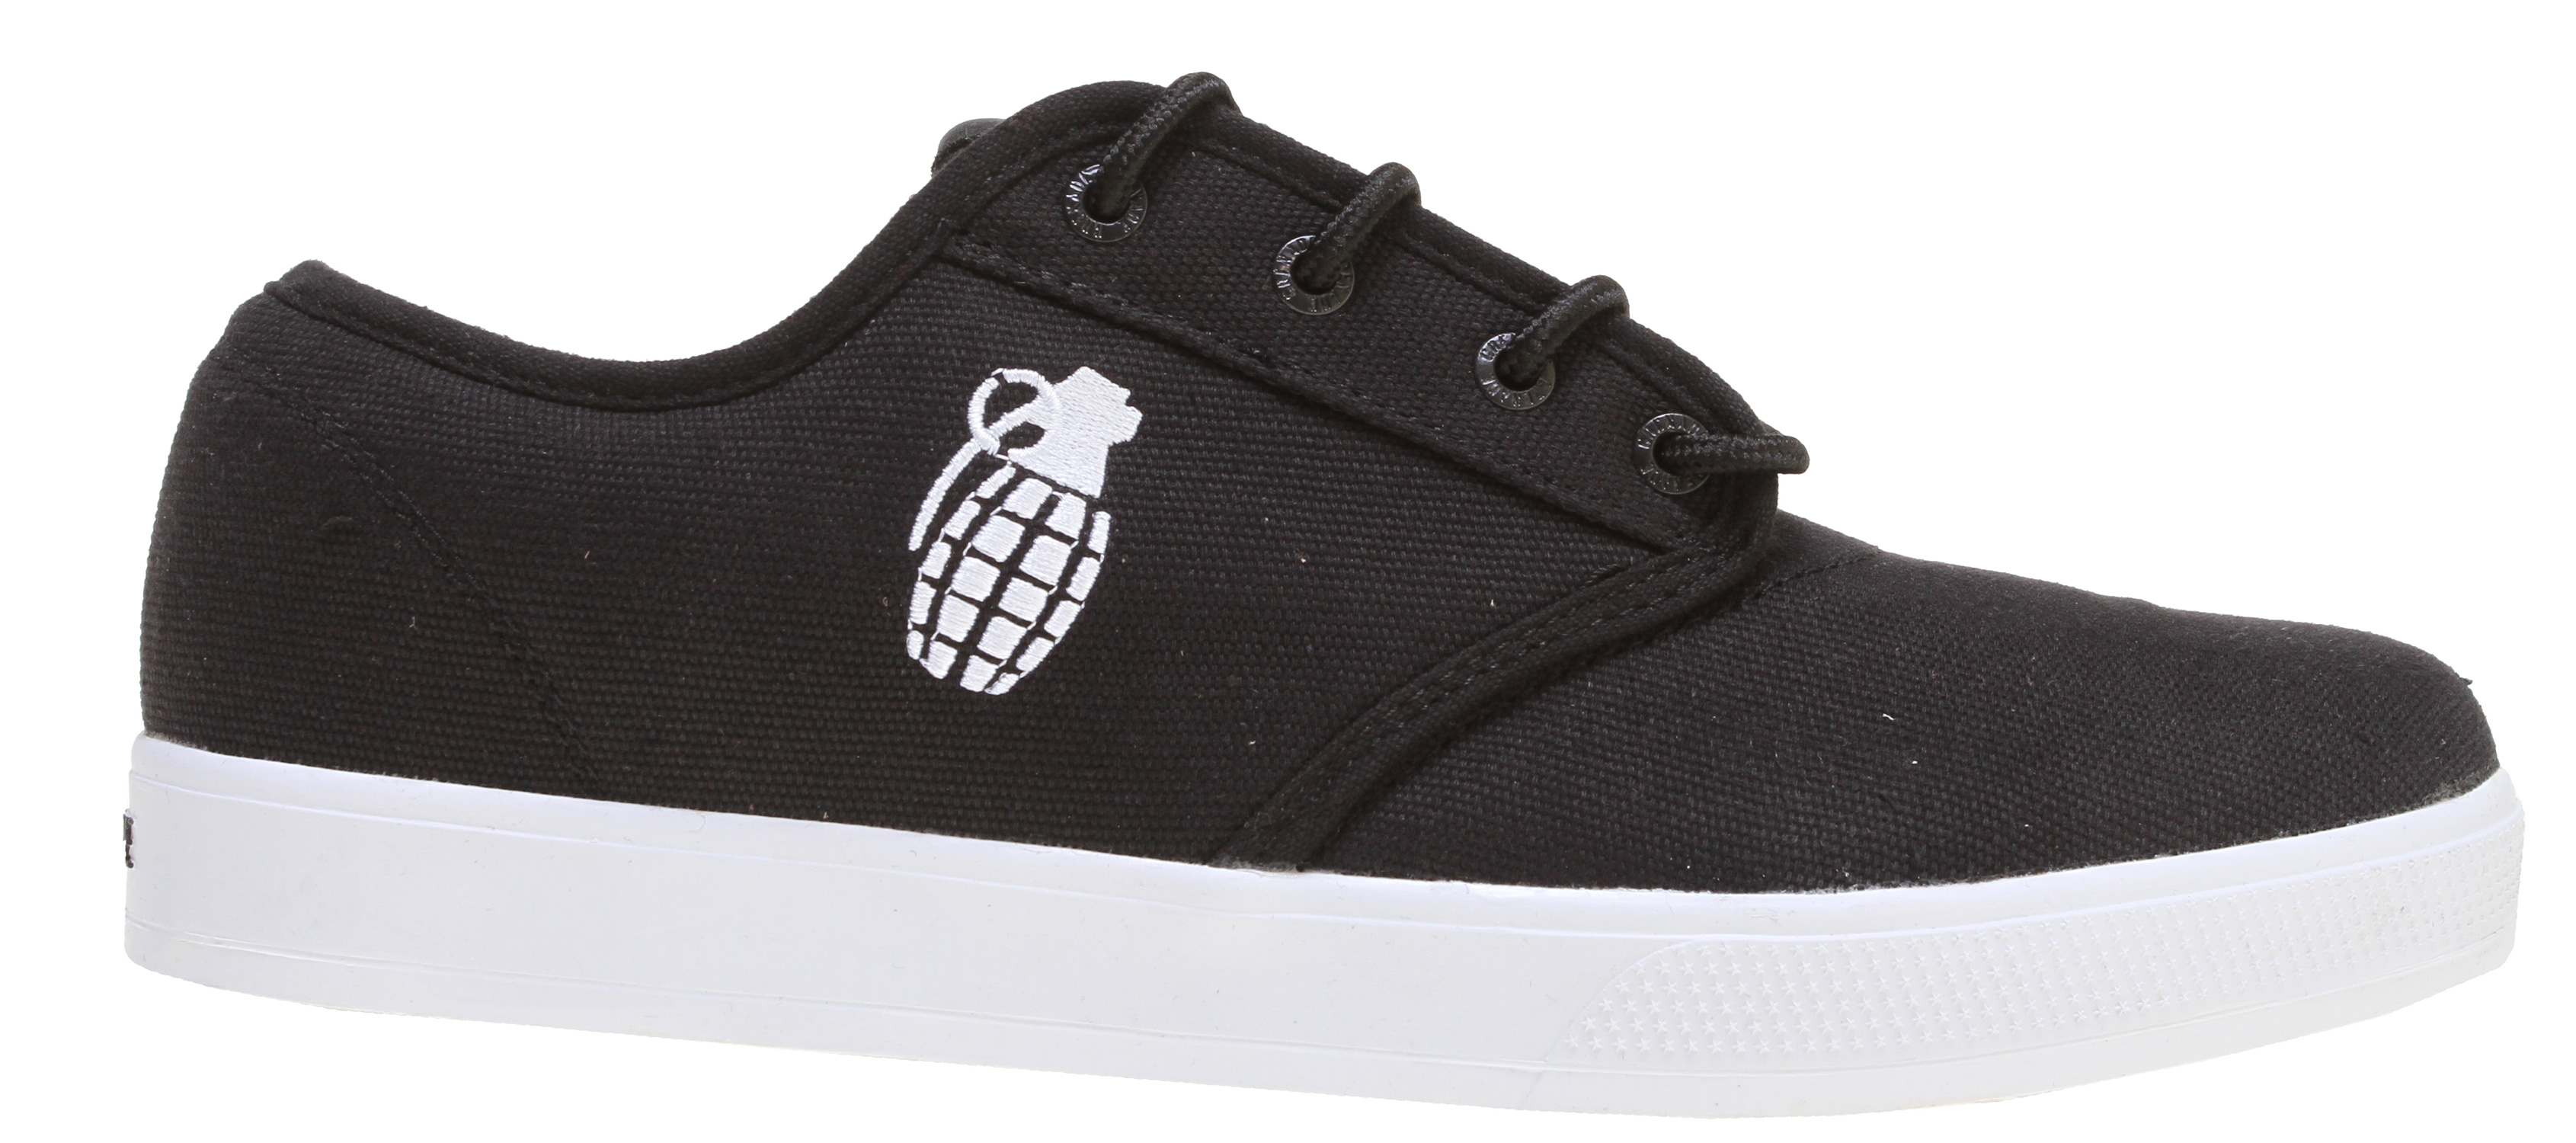 "The Grenade Unlaced Shoes features a casual unlaced look, perfect to wear outside during the day. Super comfortable, these shoes are ideal to wear for long periods at a time. Sport this look with a casual T-shirt and a pair of jeans and your outfit is complete. You're now ready to hit the town in ultra comfort and style.Key Features of the Grenade Unlaced Shoes: Grenade Shaped Lace Toggles A Pair of Grenade Branded Socks 8.5"" Die Cut Grenade Sticker Dogtags Shoebox itself is a Grenade Stencil - $16.95"